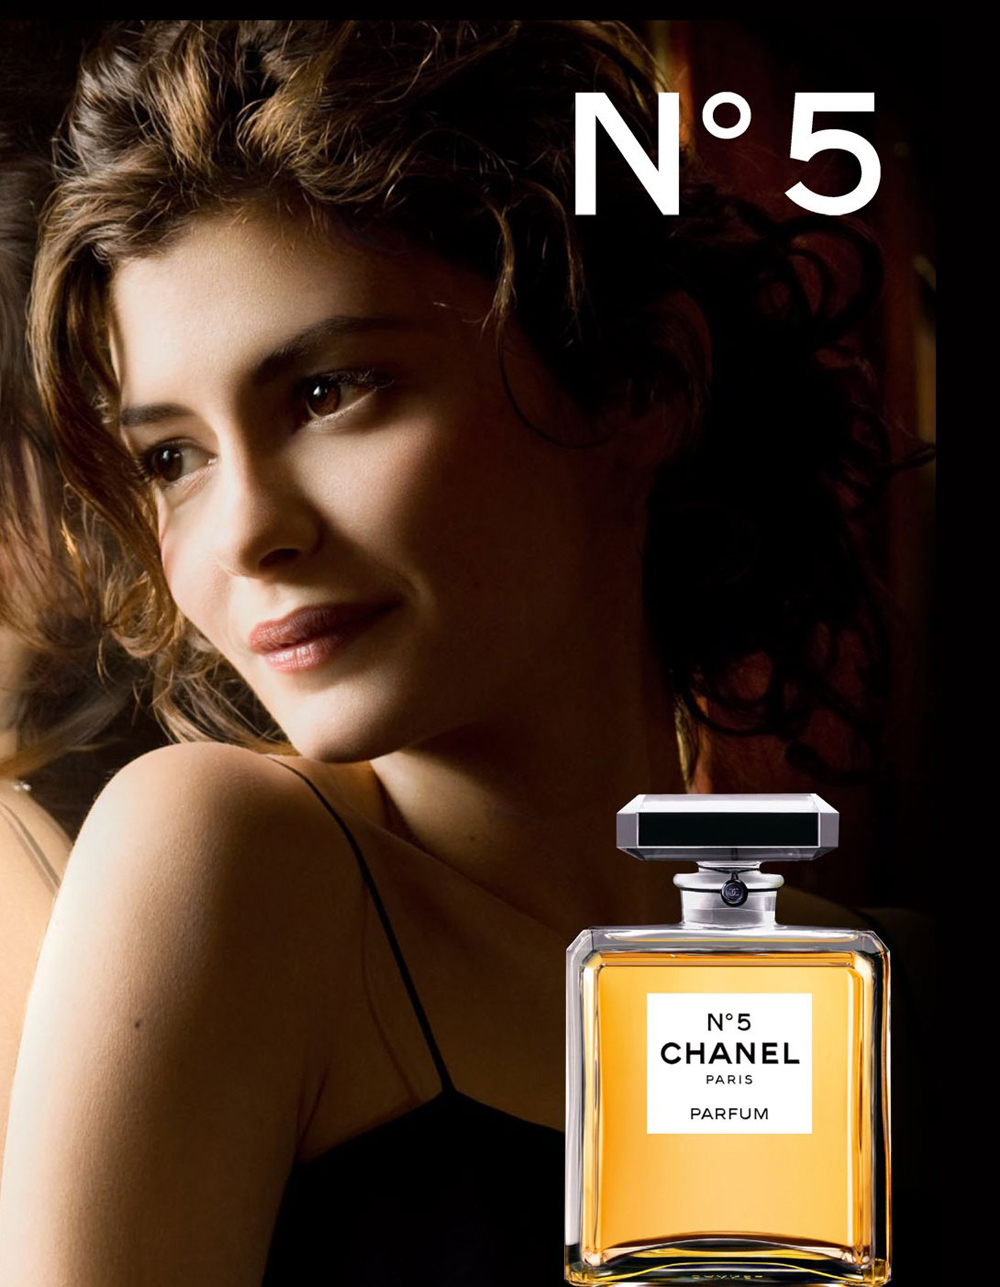 celebrities movies and games audrey tautou is the face. Black Bedroom Furniture Sets. Home Design Ideas